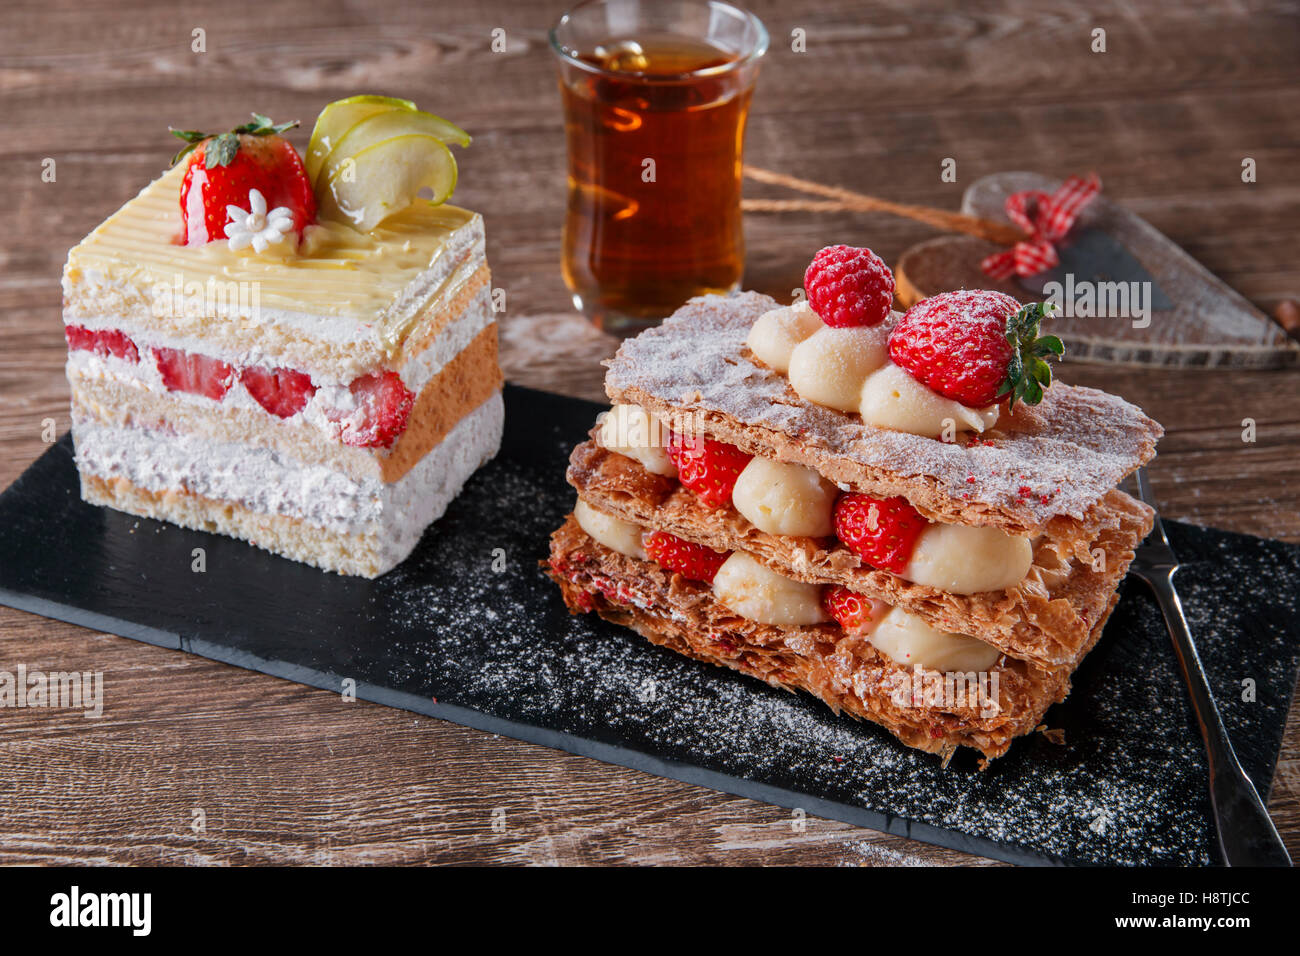 cream cake strawberry frosting mille feuille dessert sweet on black stone - Stock Image